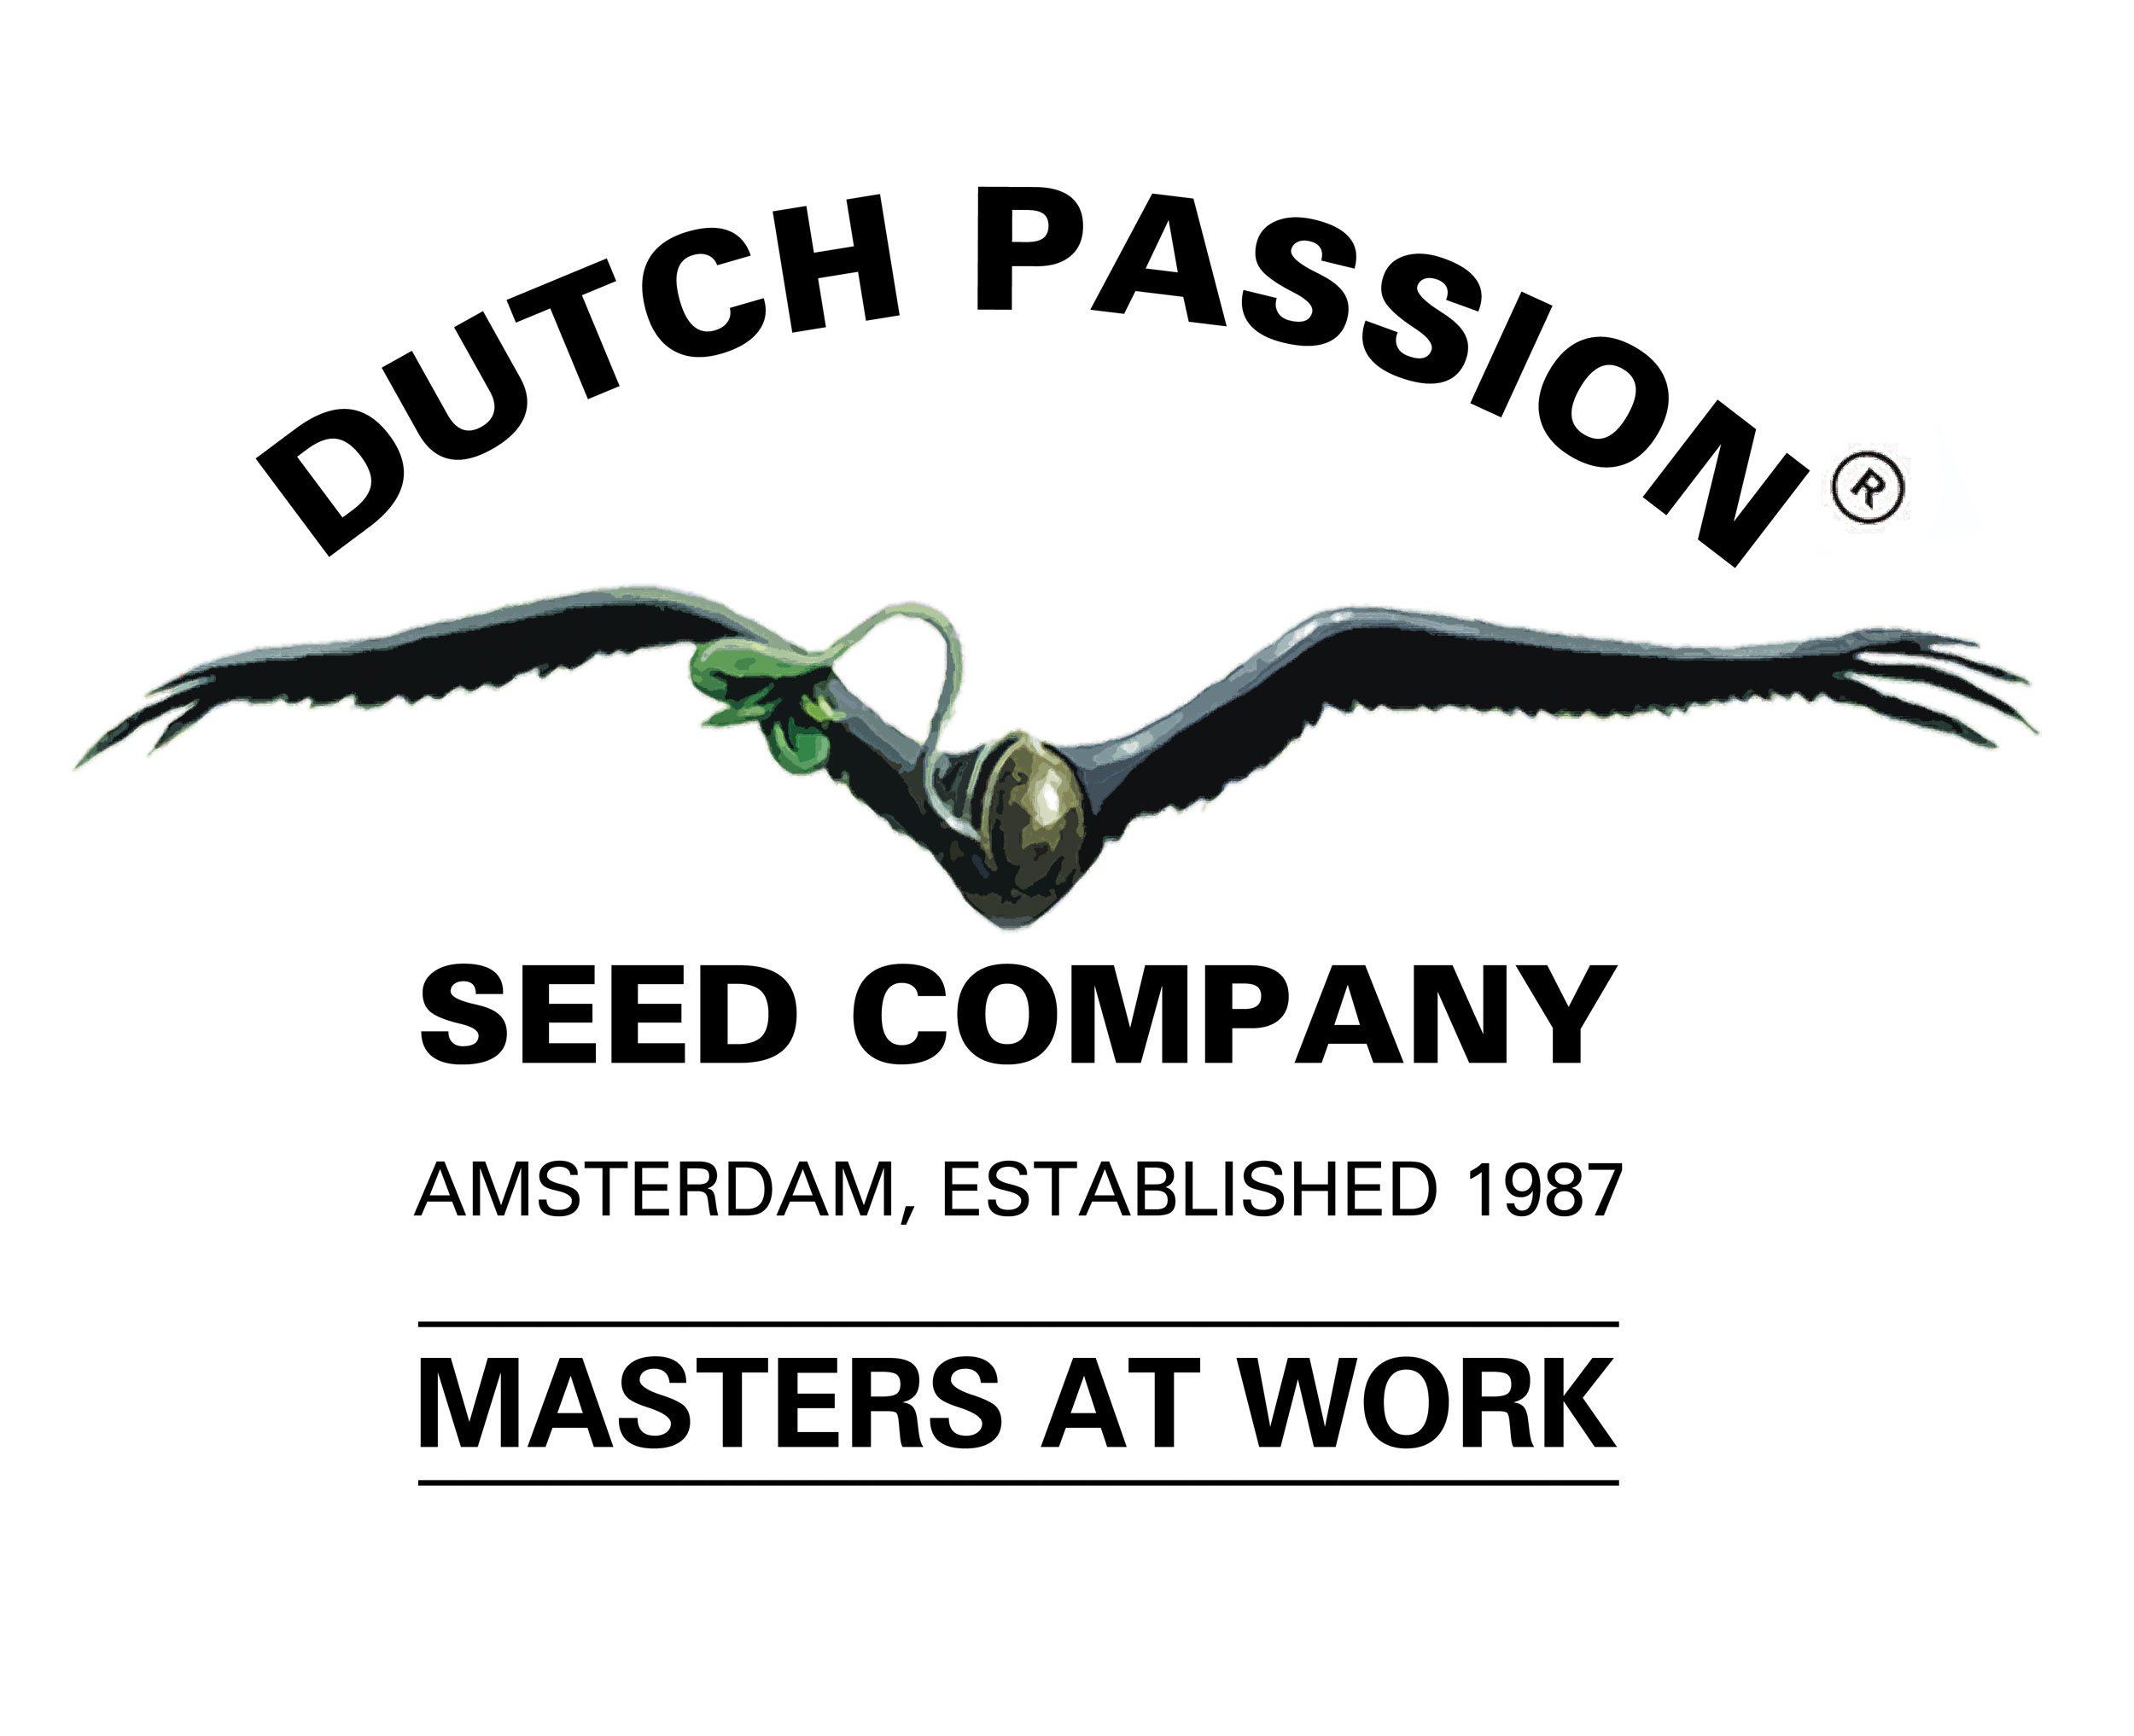 Dutch Passion Twilight 10ks